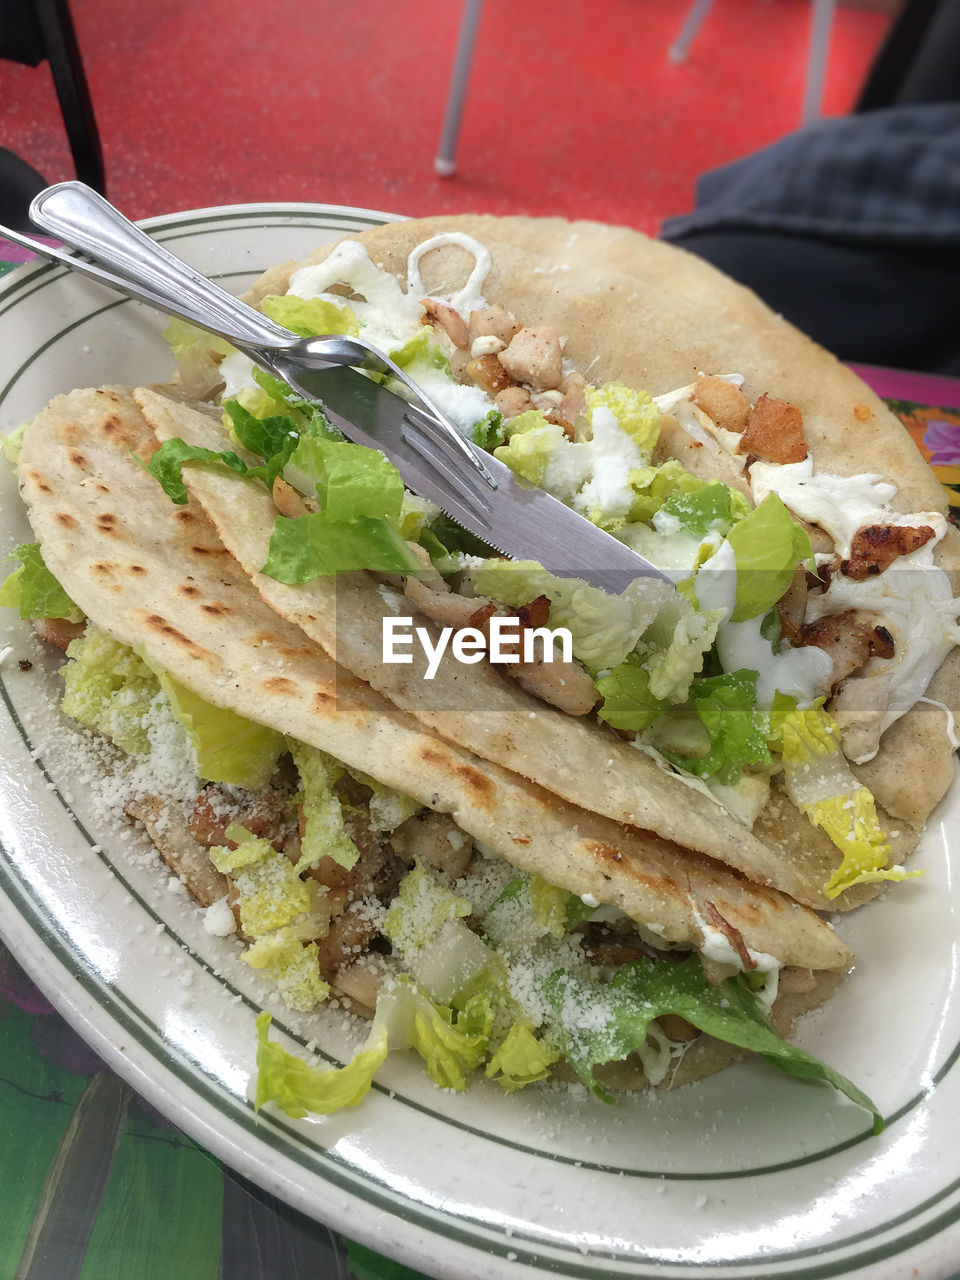 food and drink, food, plate, freshness, indoors, ready-to-eat, healthy eating, no people, close-up, tortilla - flatbread, fast food, mexican food, stuffed, day